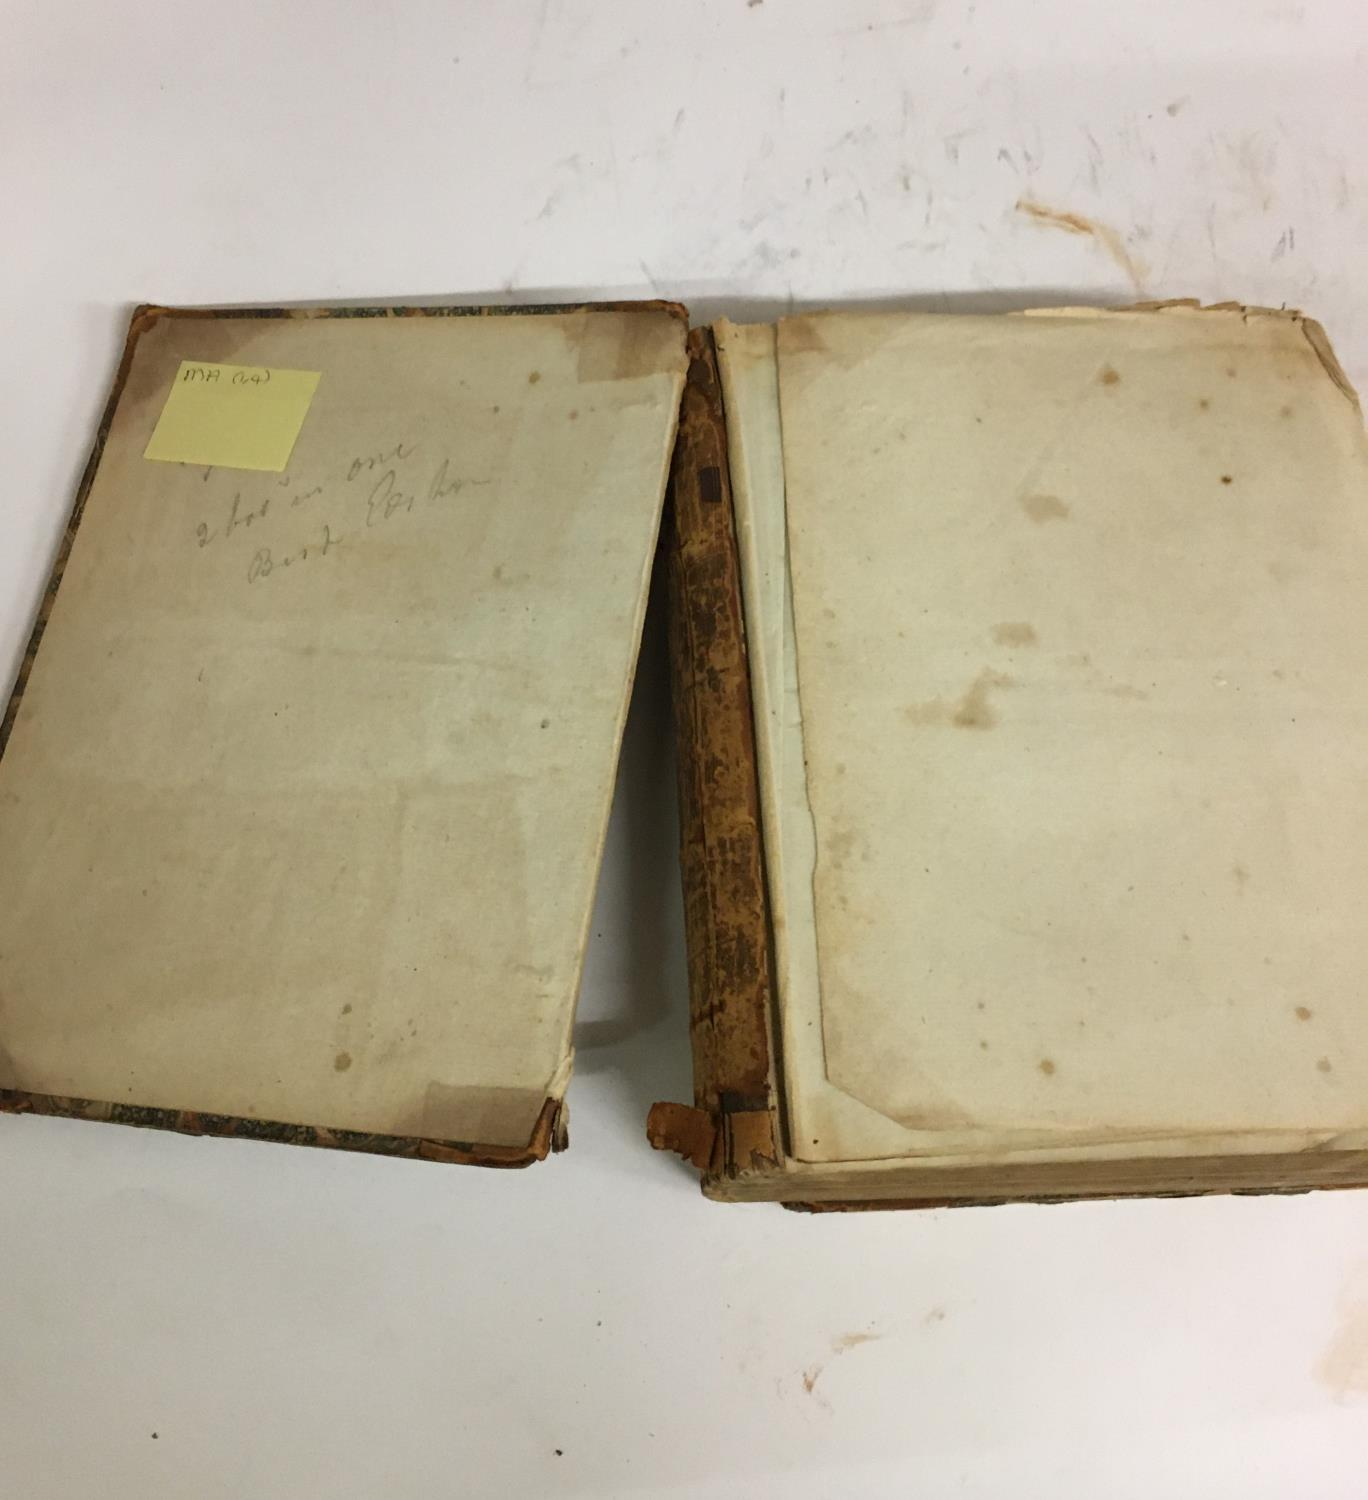 Culpeper, Nicholas. The English Physician; and Complete Herbal... with Notes and Observations, - Image 3 of 7